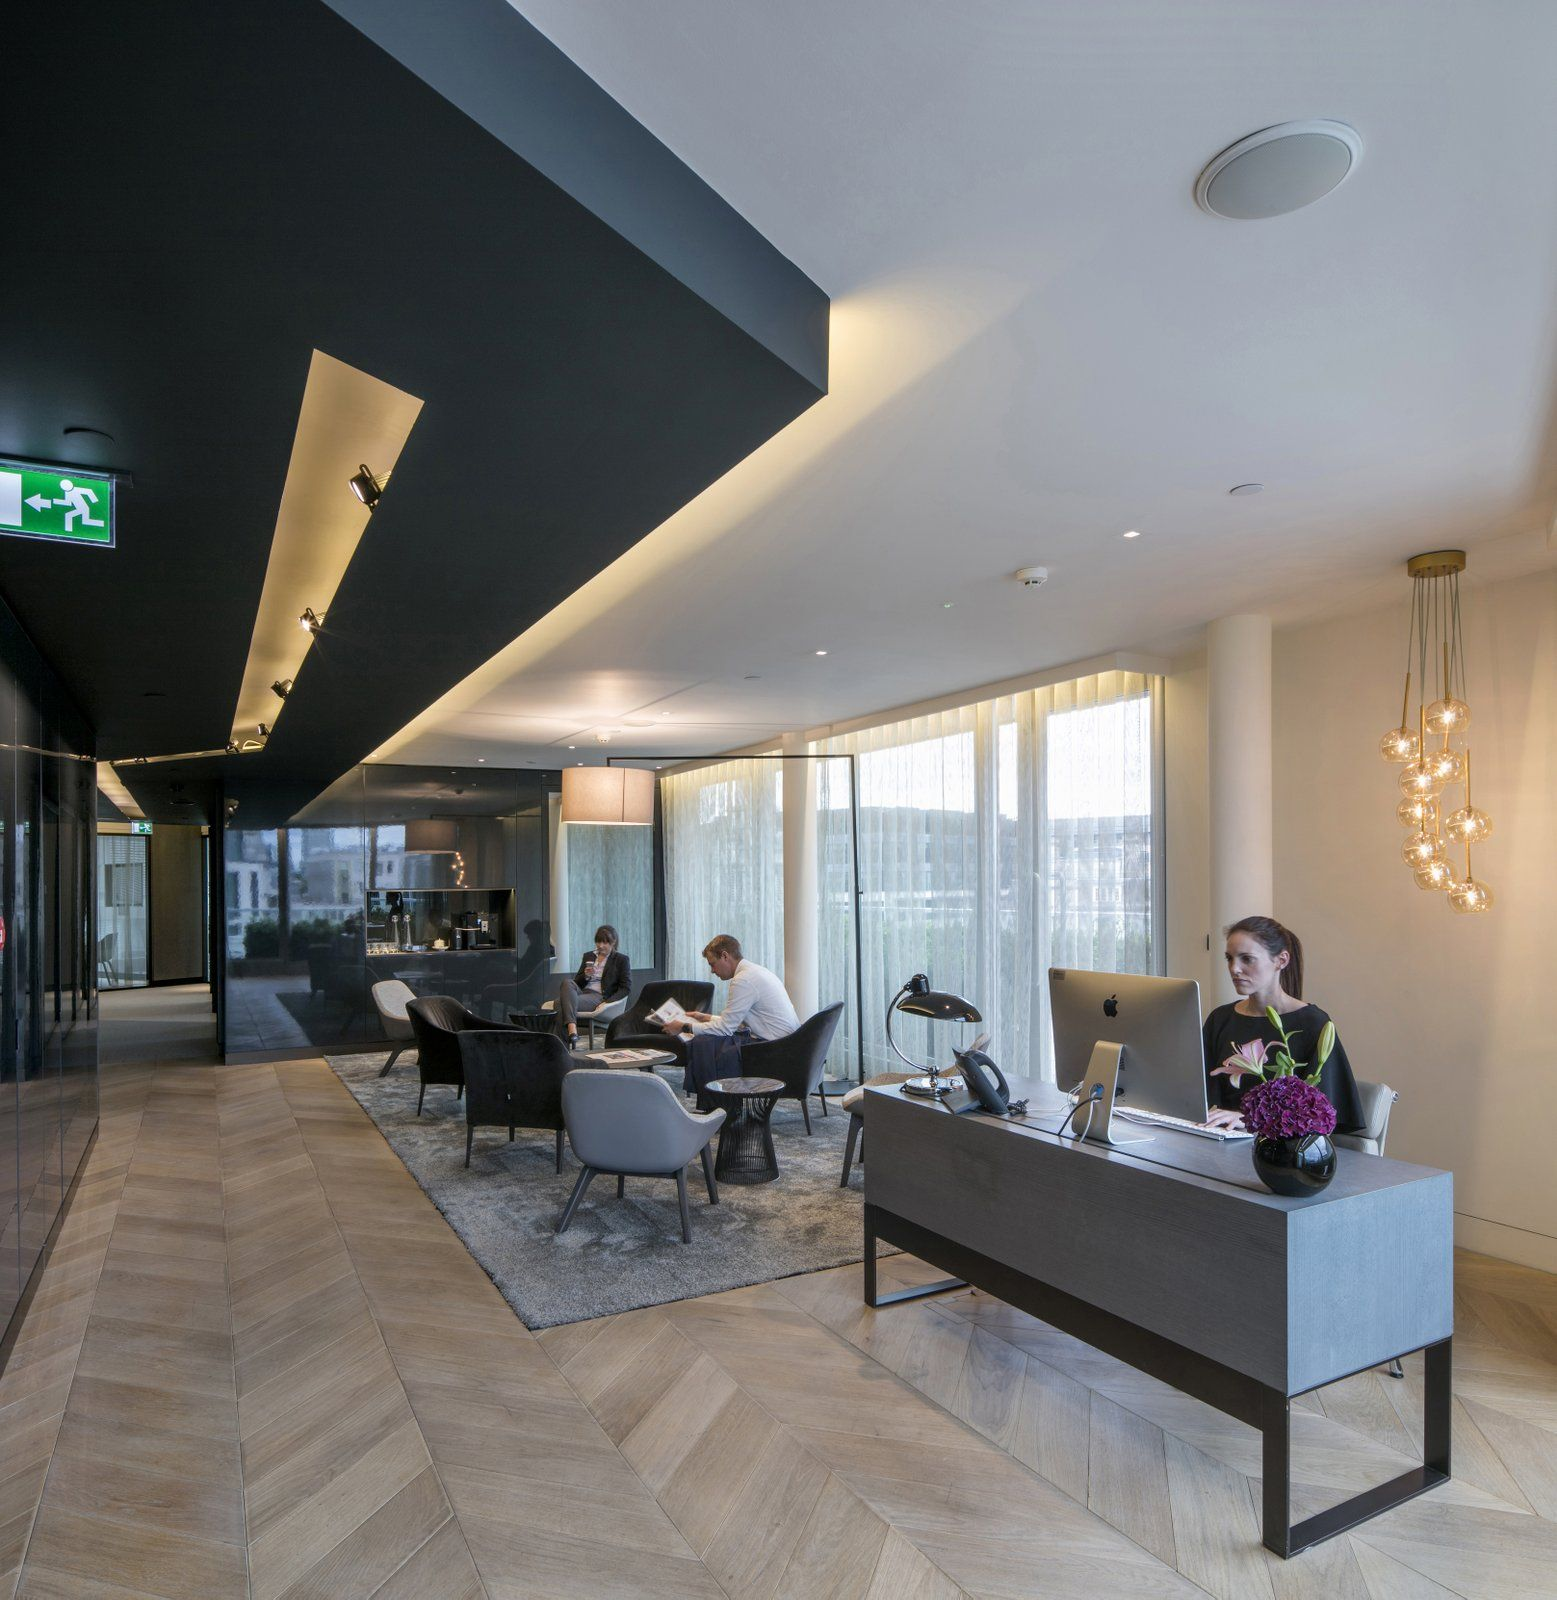 Office Tour CBRE Offices London Herringbone wood floor